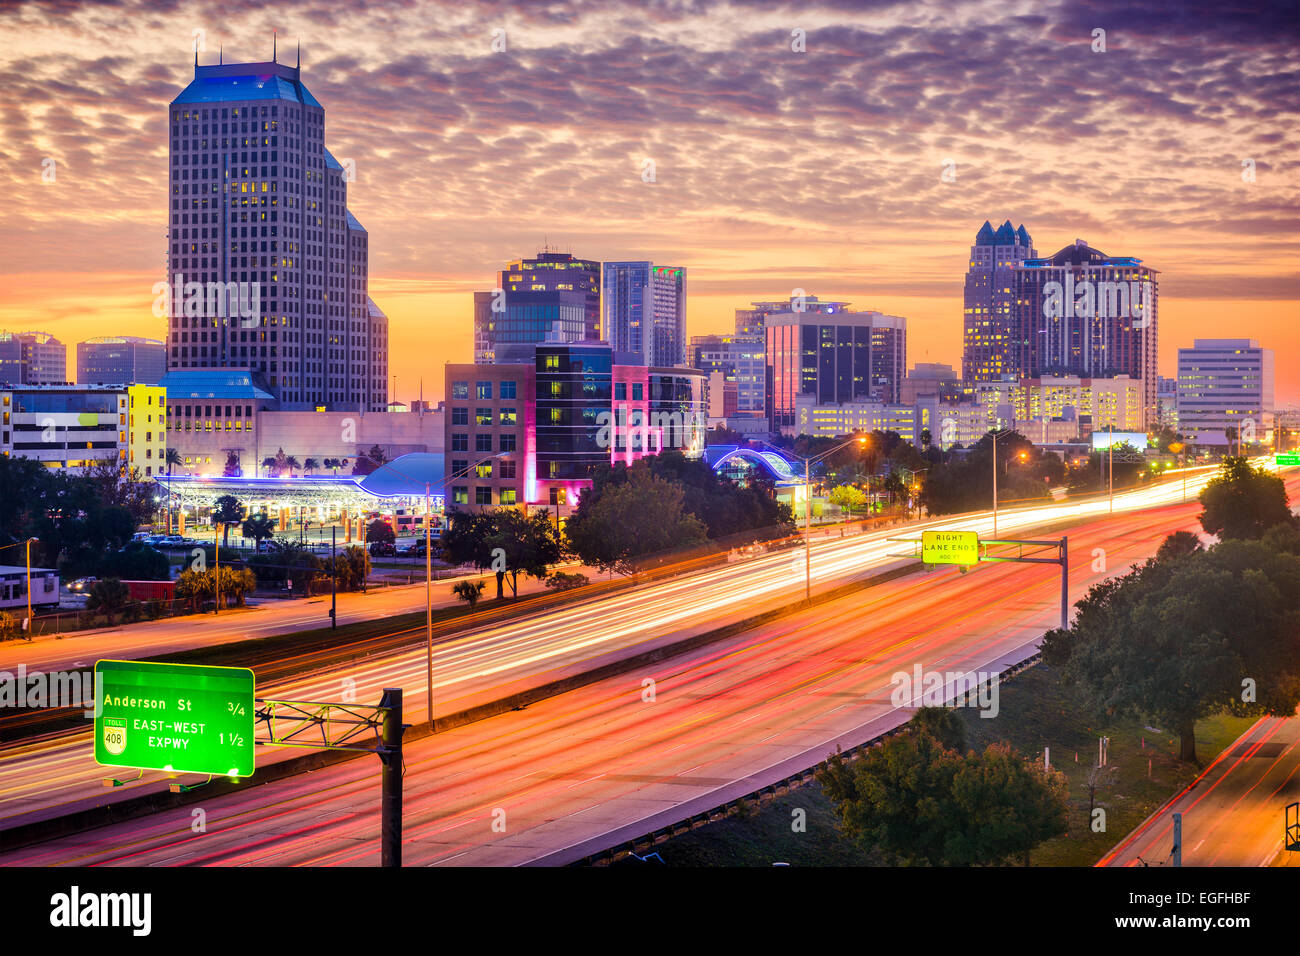 Orlando, Floride, USA paysage urbain. Photo Stock